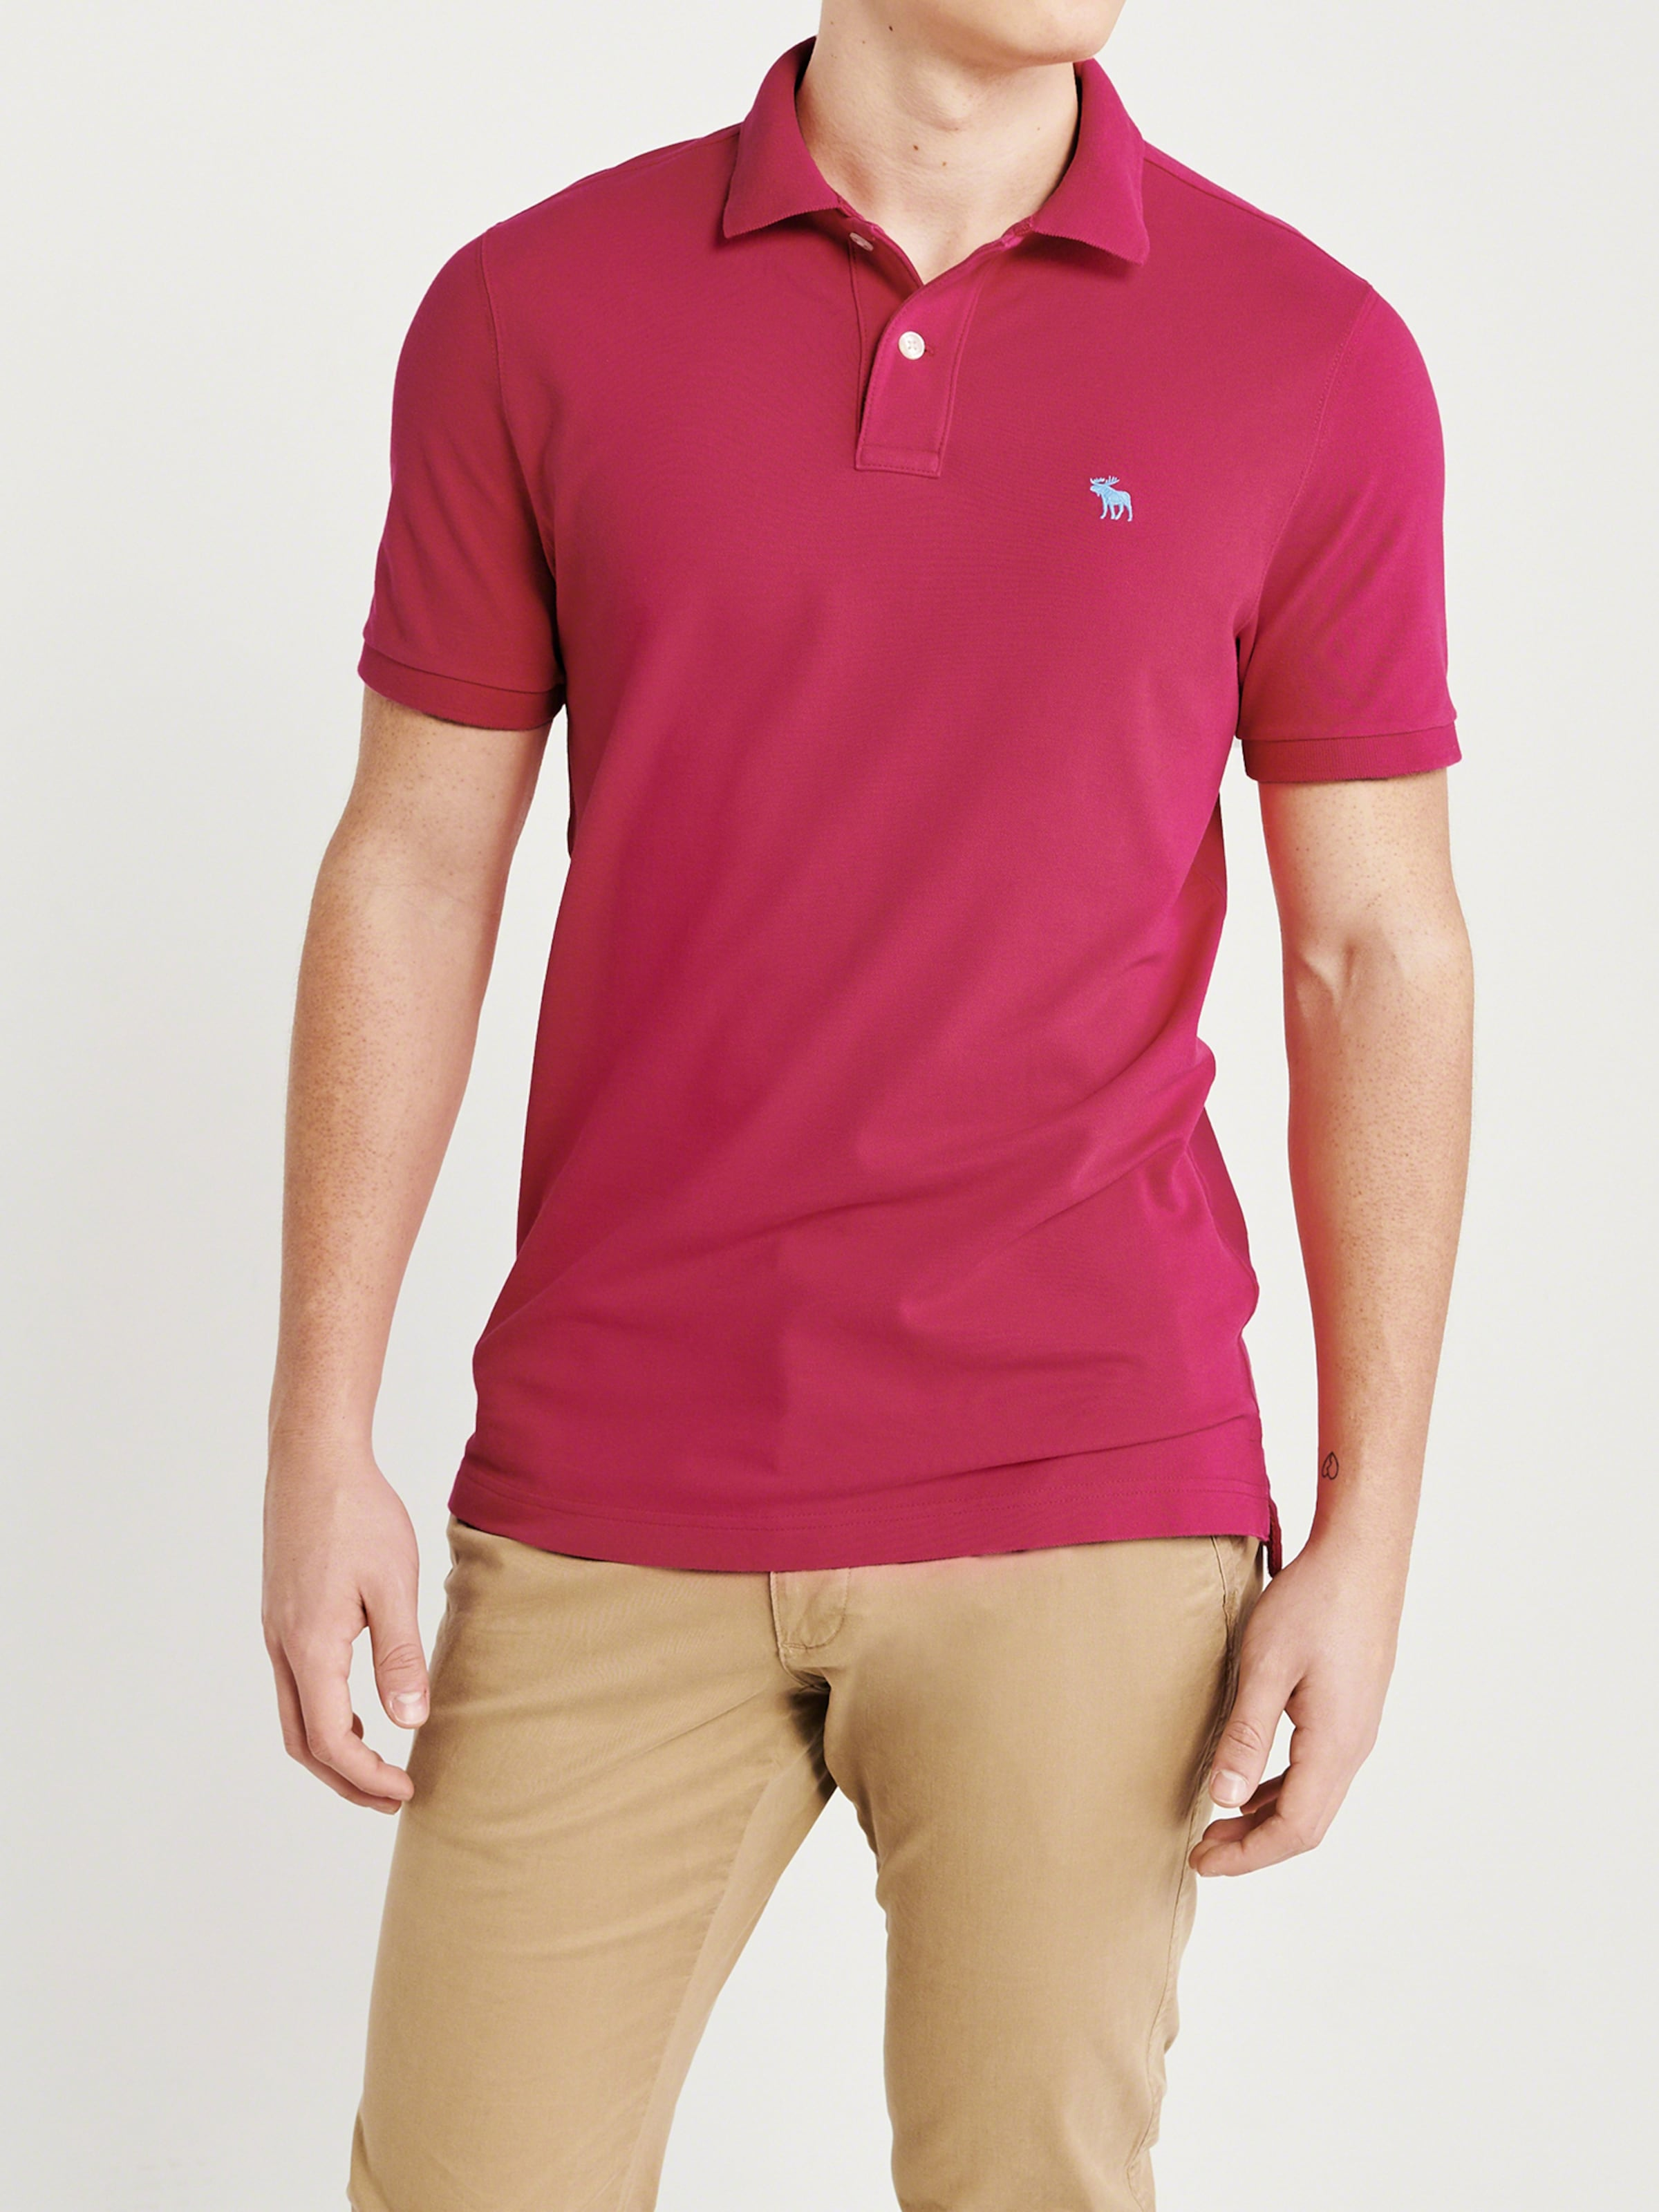 Fitch Poloshirt Poloshirt Abercrombieamp; Fitch Pink Abercrombieamp; Abercrombieamp; In Pink Fitch In Poloshirt stChrQdx